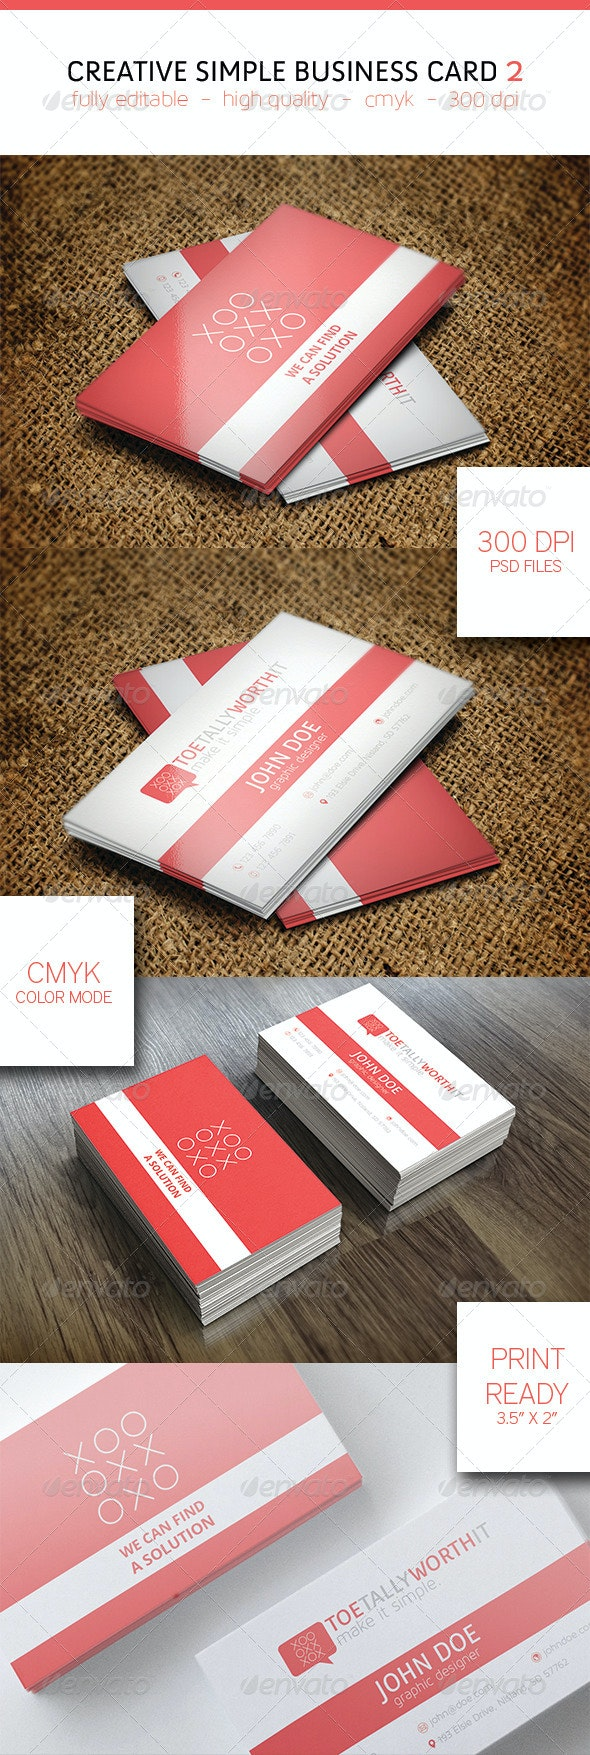 Creative Simple Business Card 2 - Business Cards Print Templates